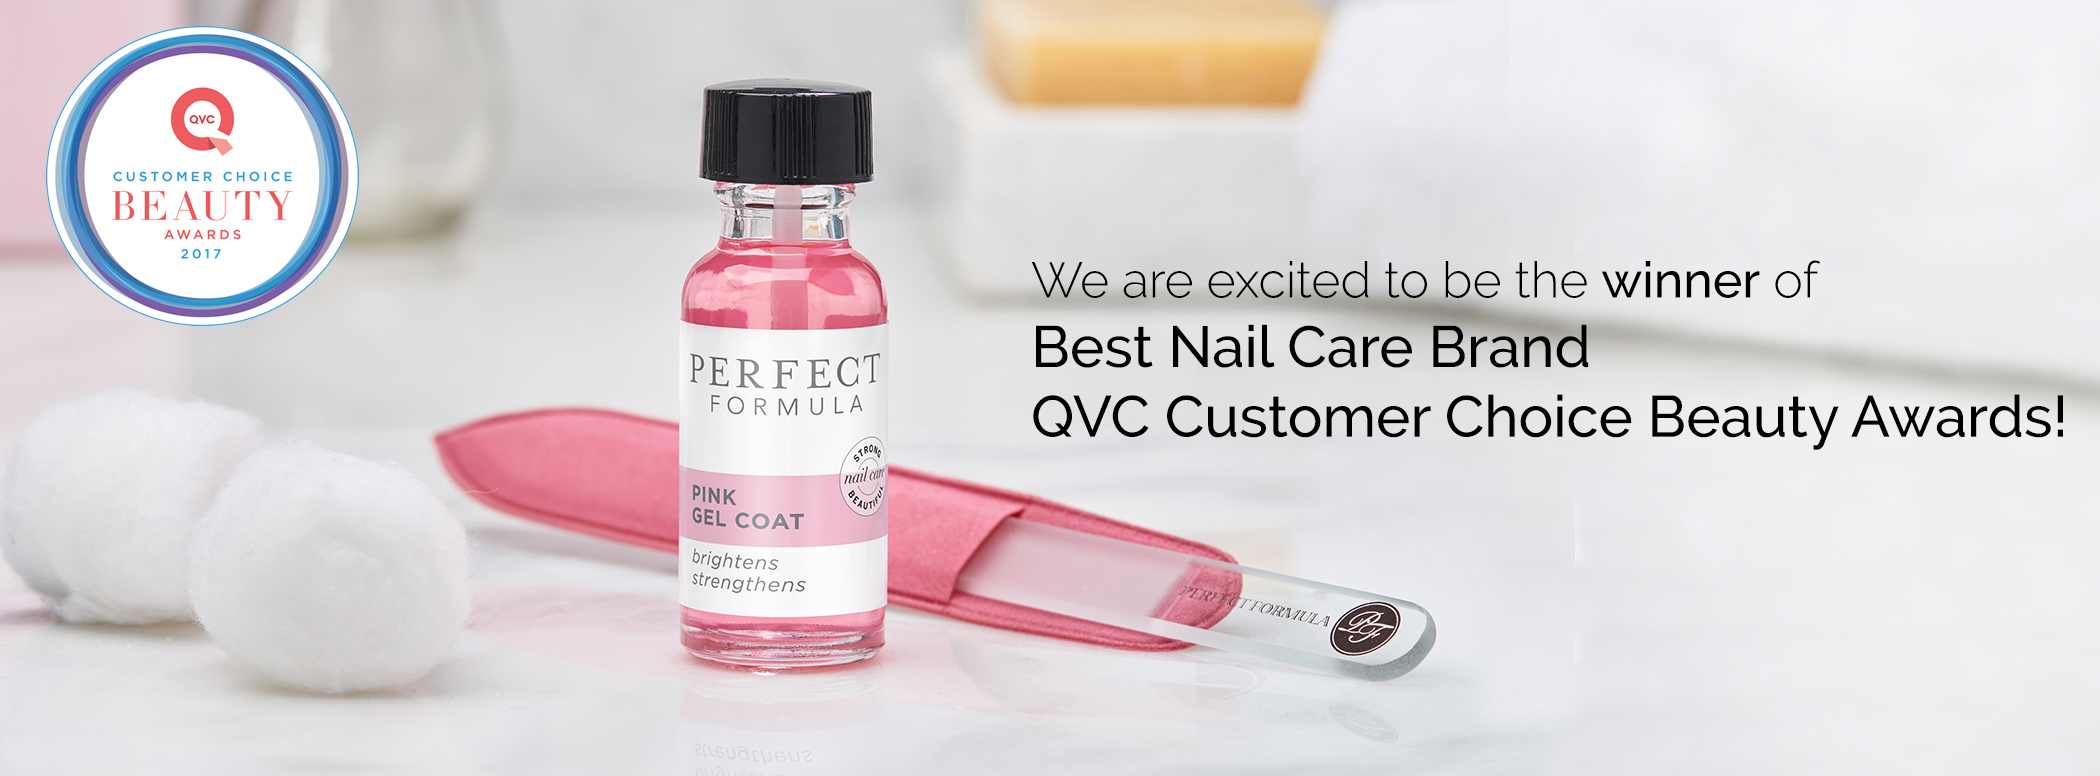 Perfect Formulas | Essential Nail Care Products | Home